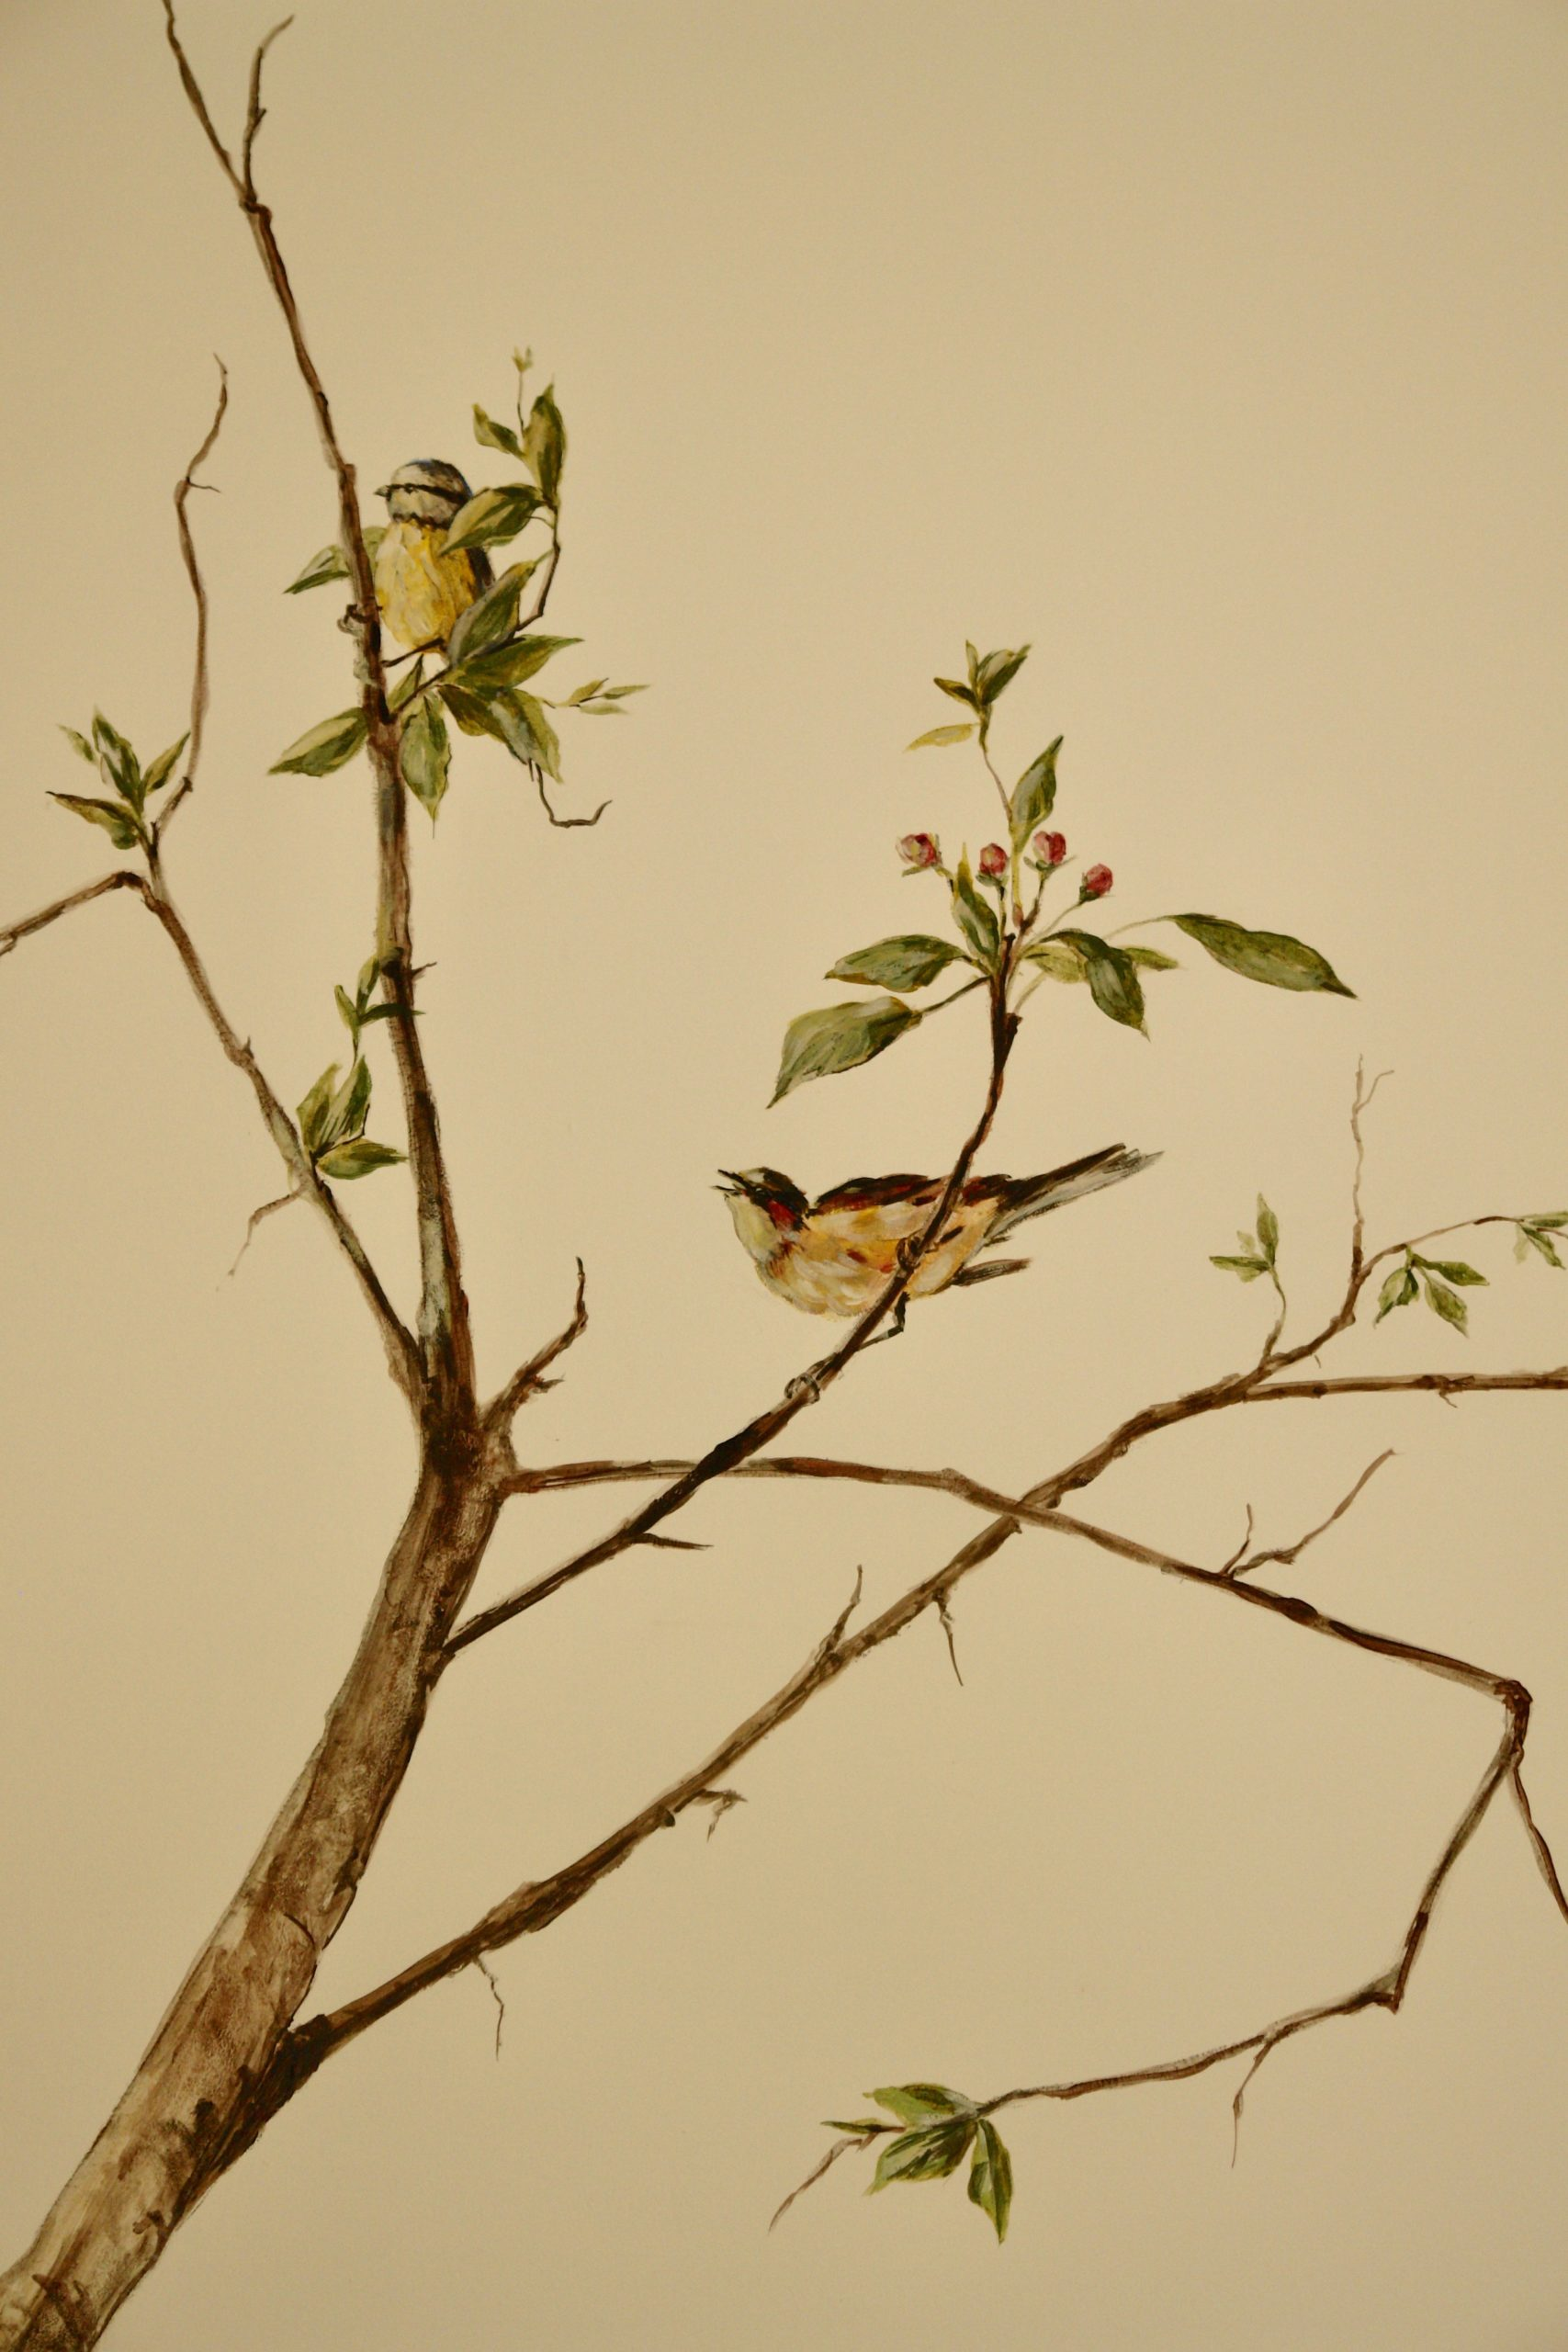 Birds on branches of apple tree in blossom painted on the wall of the bedroom